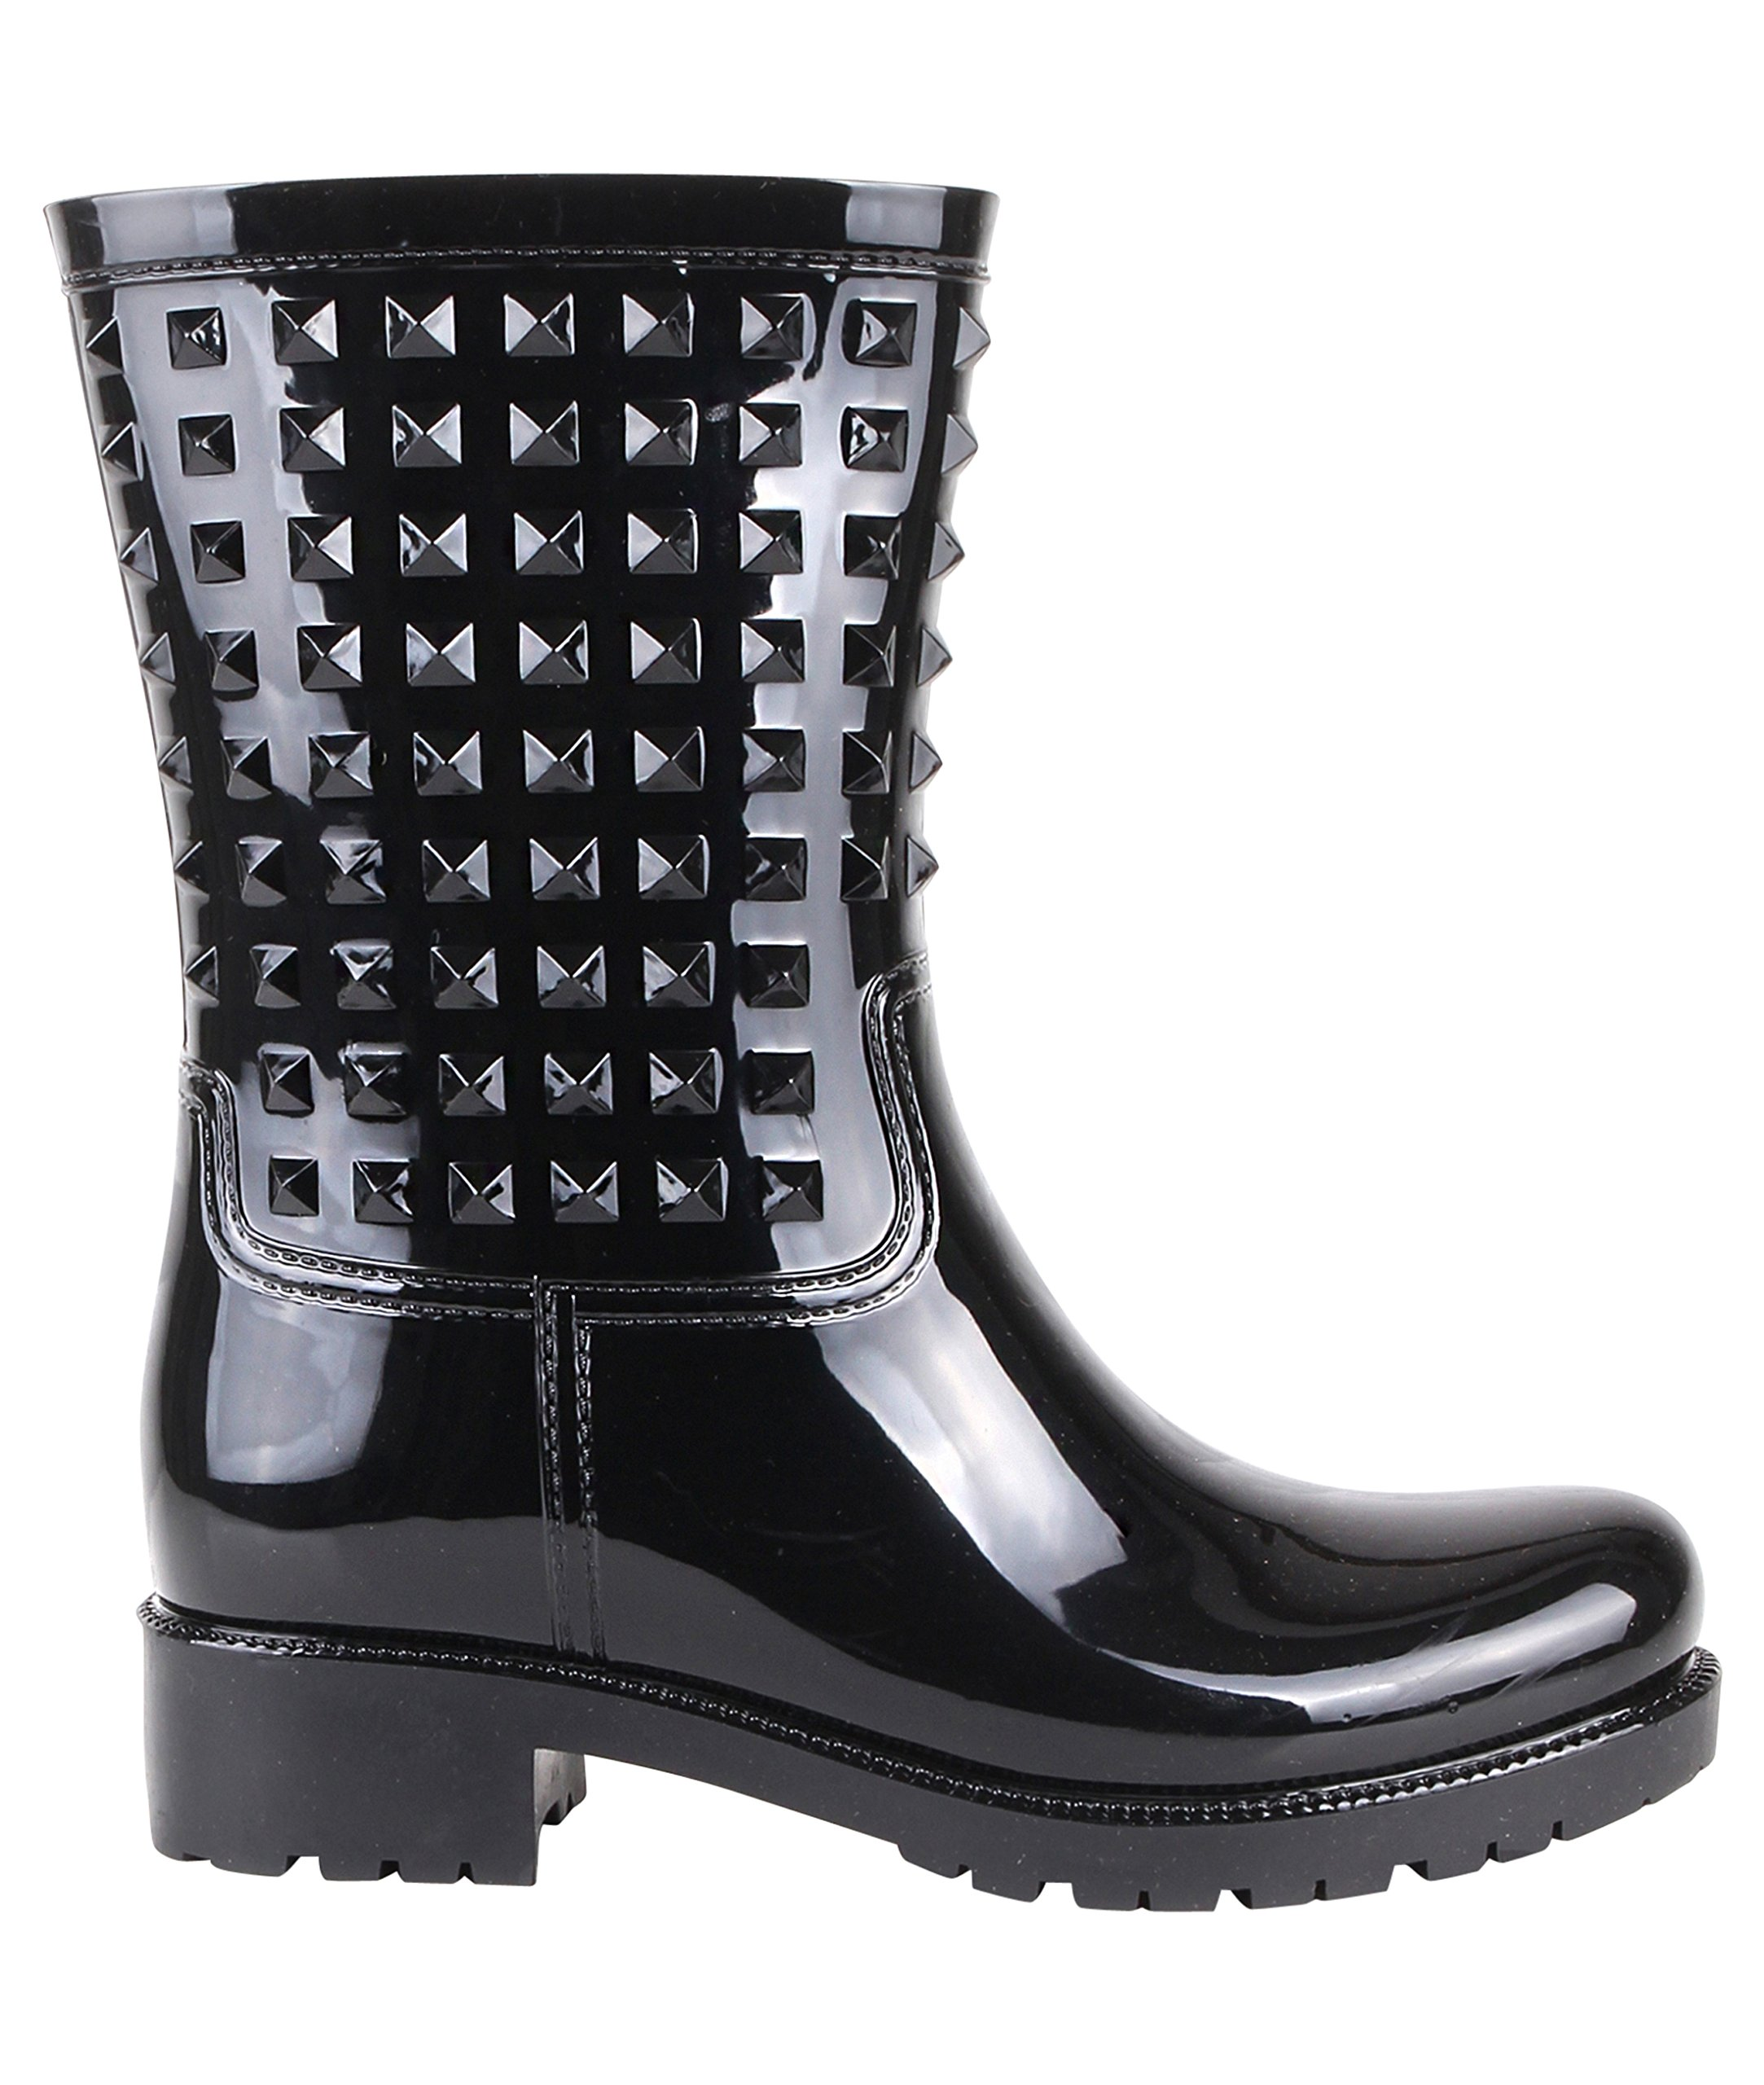 Stud Wellington Calf Boots (Black, US 10),[4056-BLK-8]